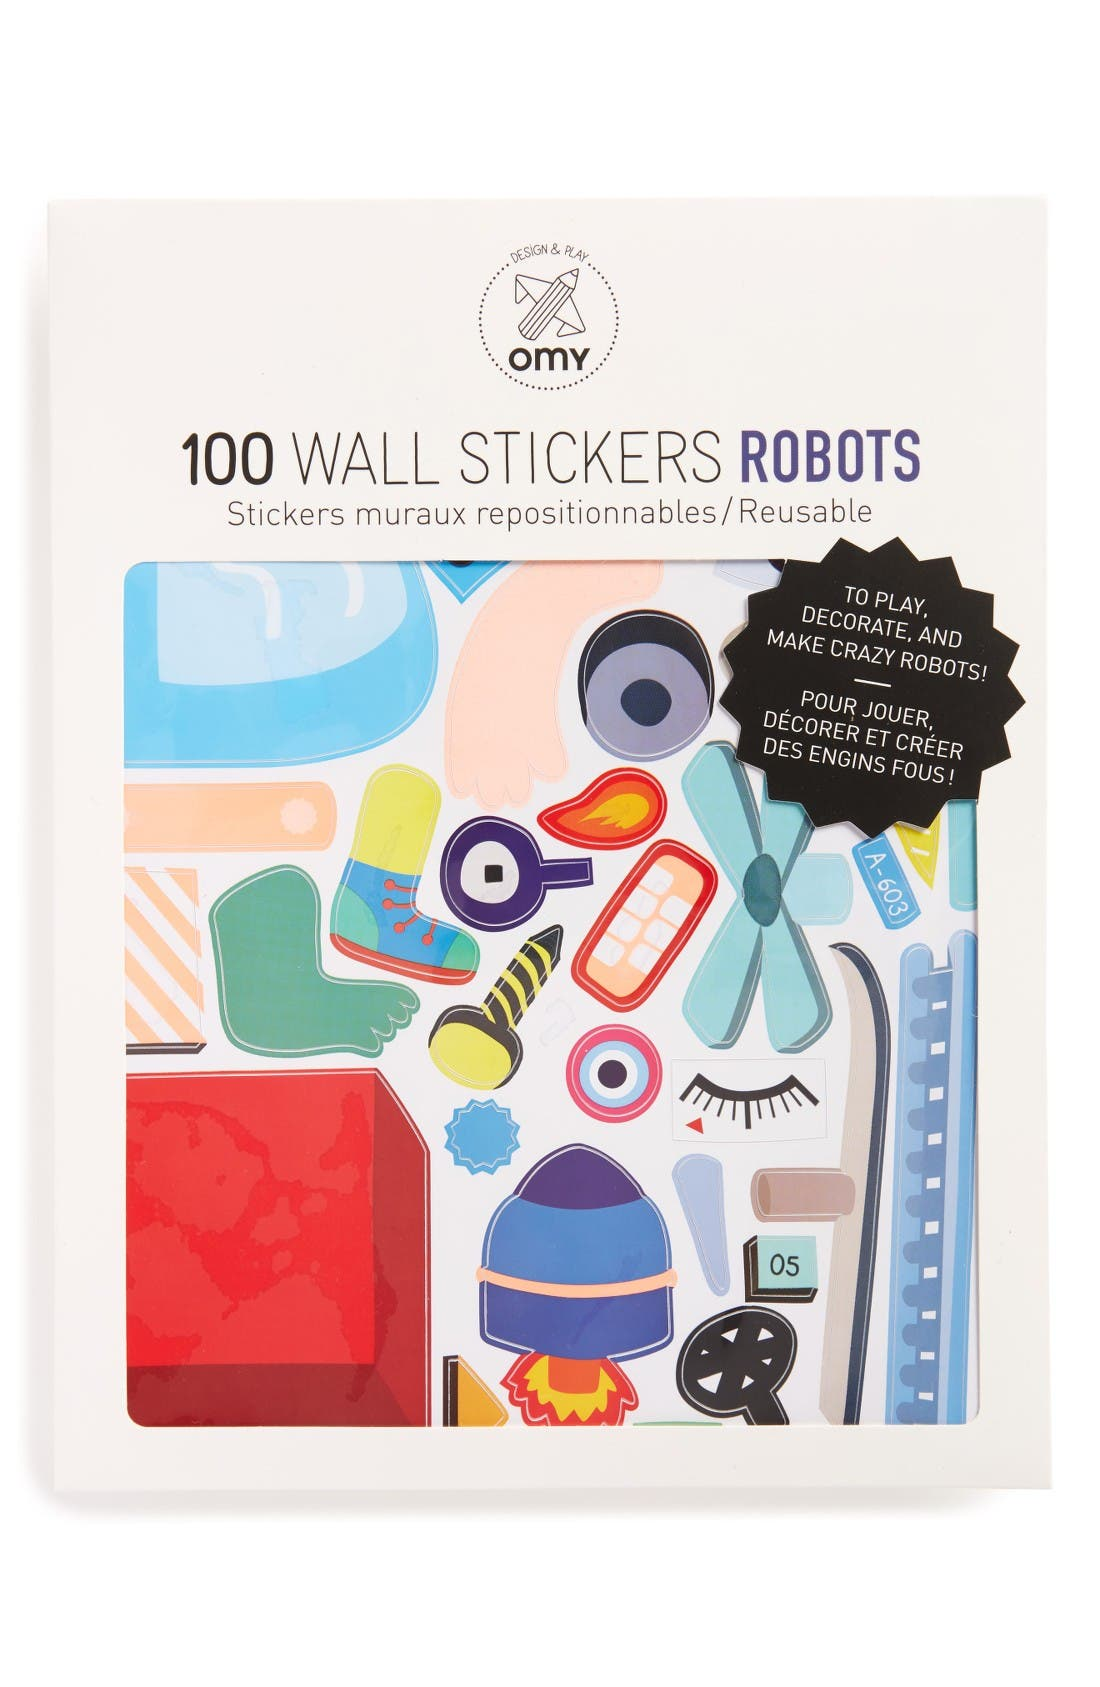 OMY Robot Wall Stickers